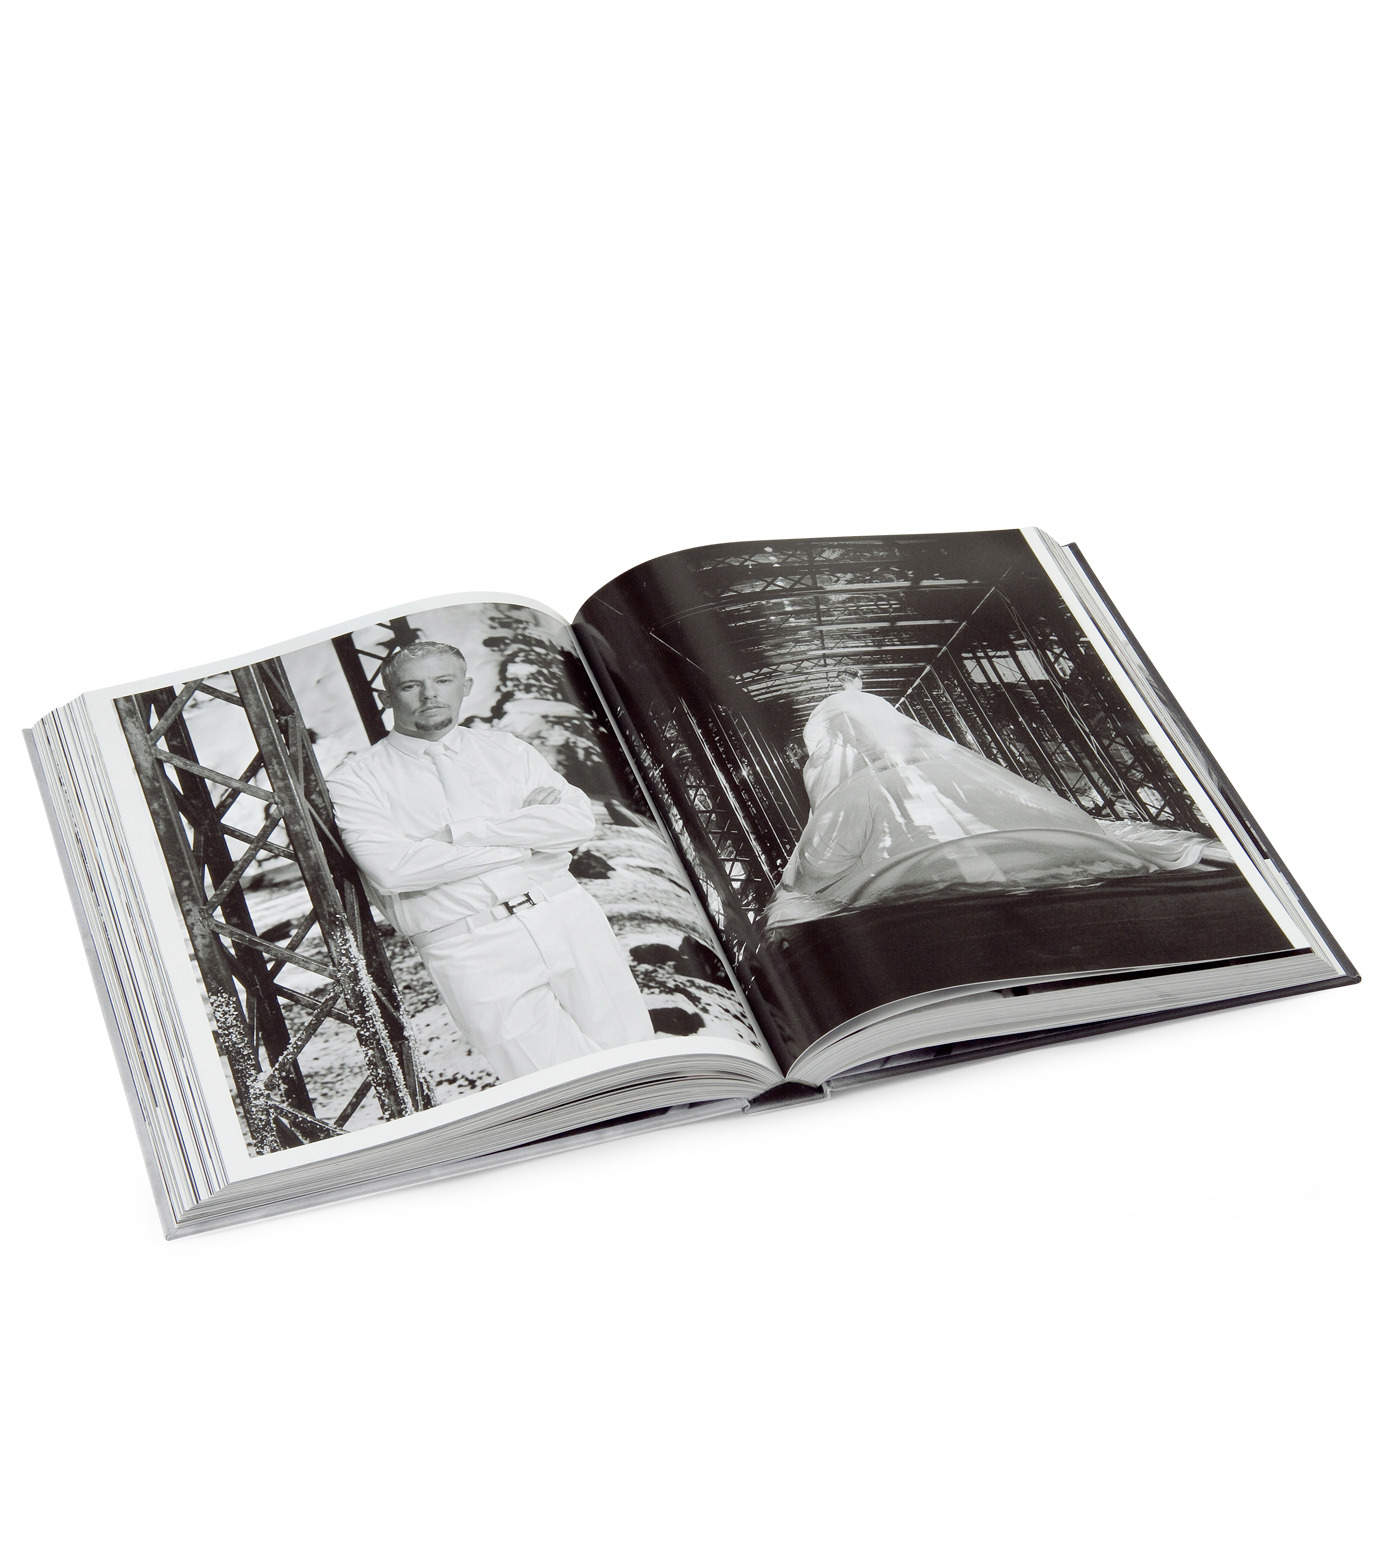 ArtBook(アートブック)のLove looks not with the eyes: thirteen years with lee alexander mcqueen.-GRAY(インテリア/OTHER-GOODS/interior/OTHER-GOODS)-4197-0448-2-11 拡大詳細画像5